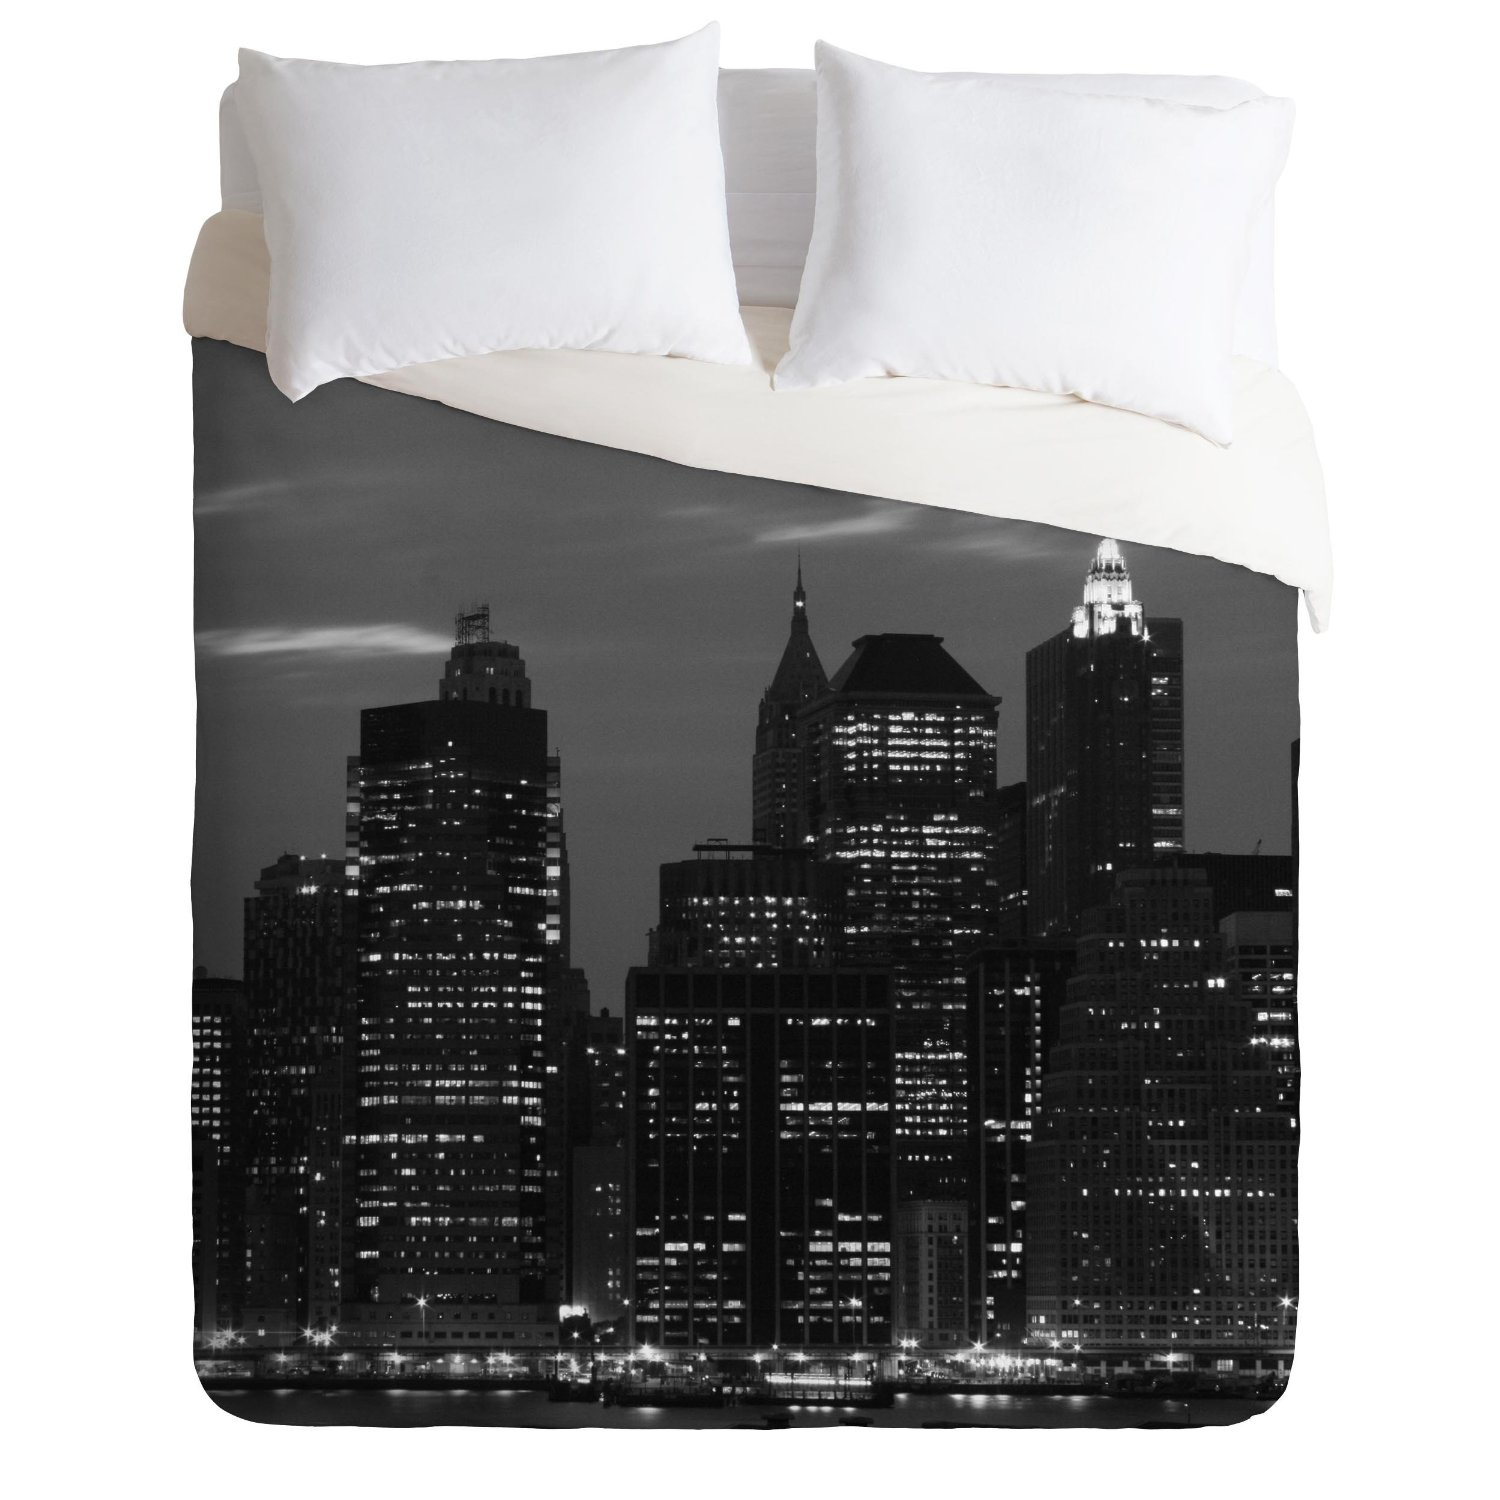 Getting Started With Your New York City Themed Focal Point: Fabulous Bedding